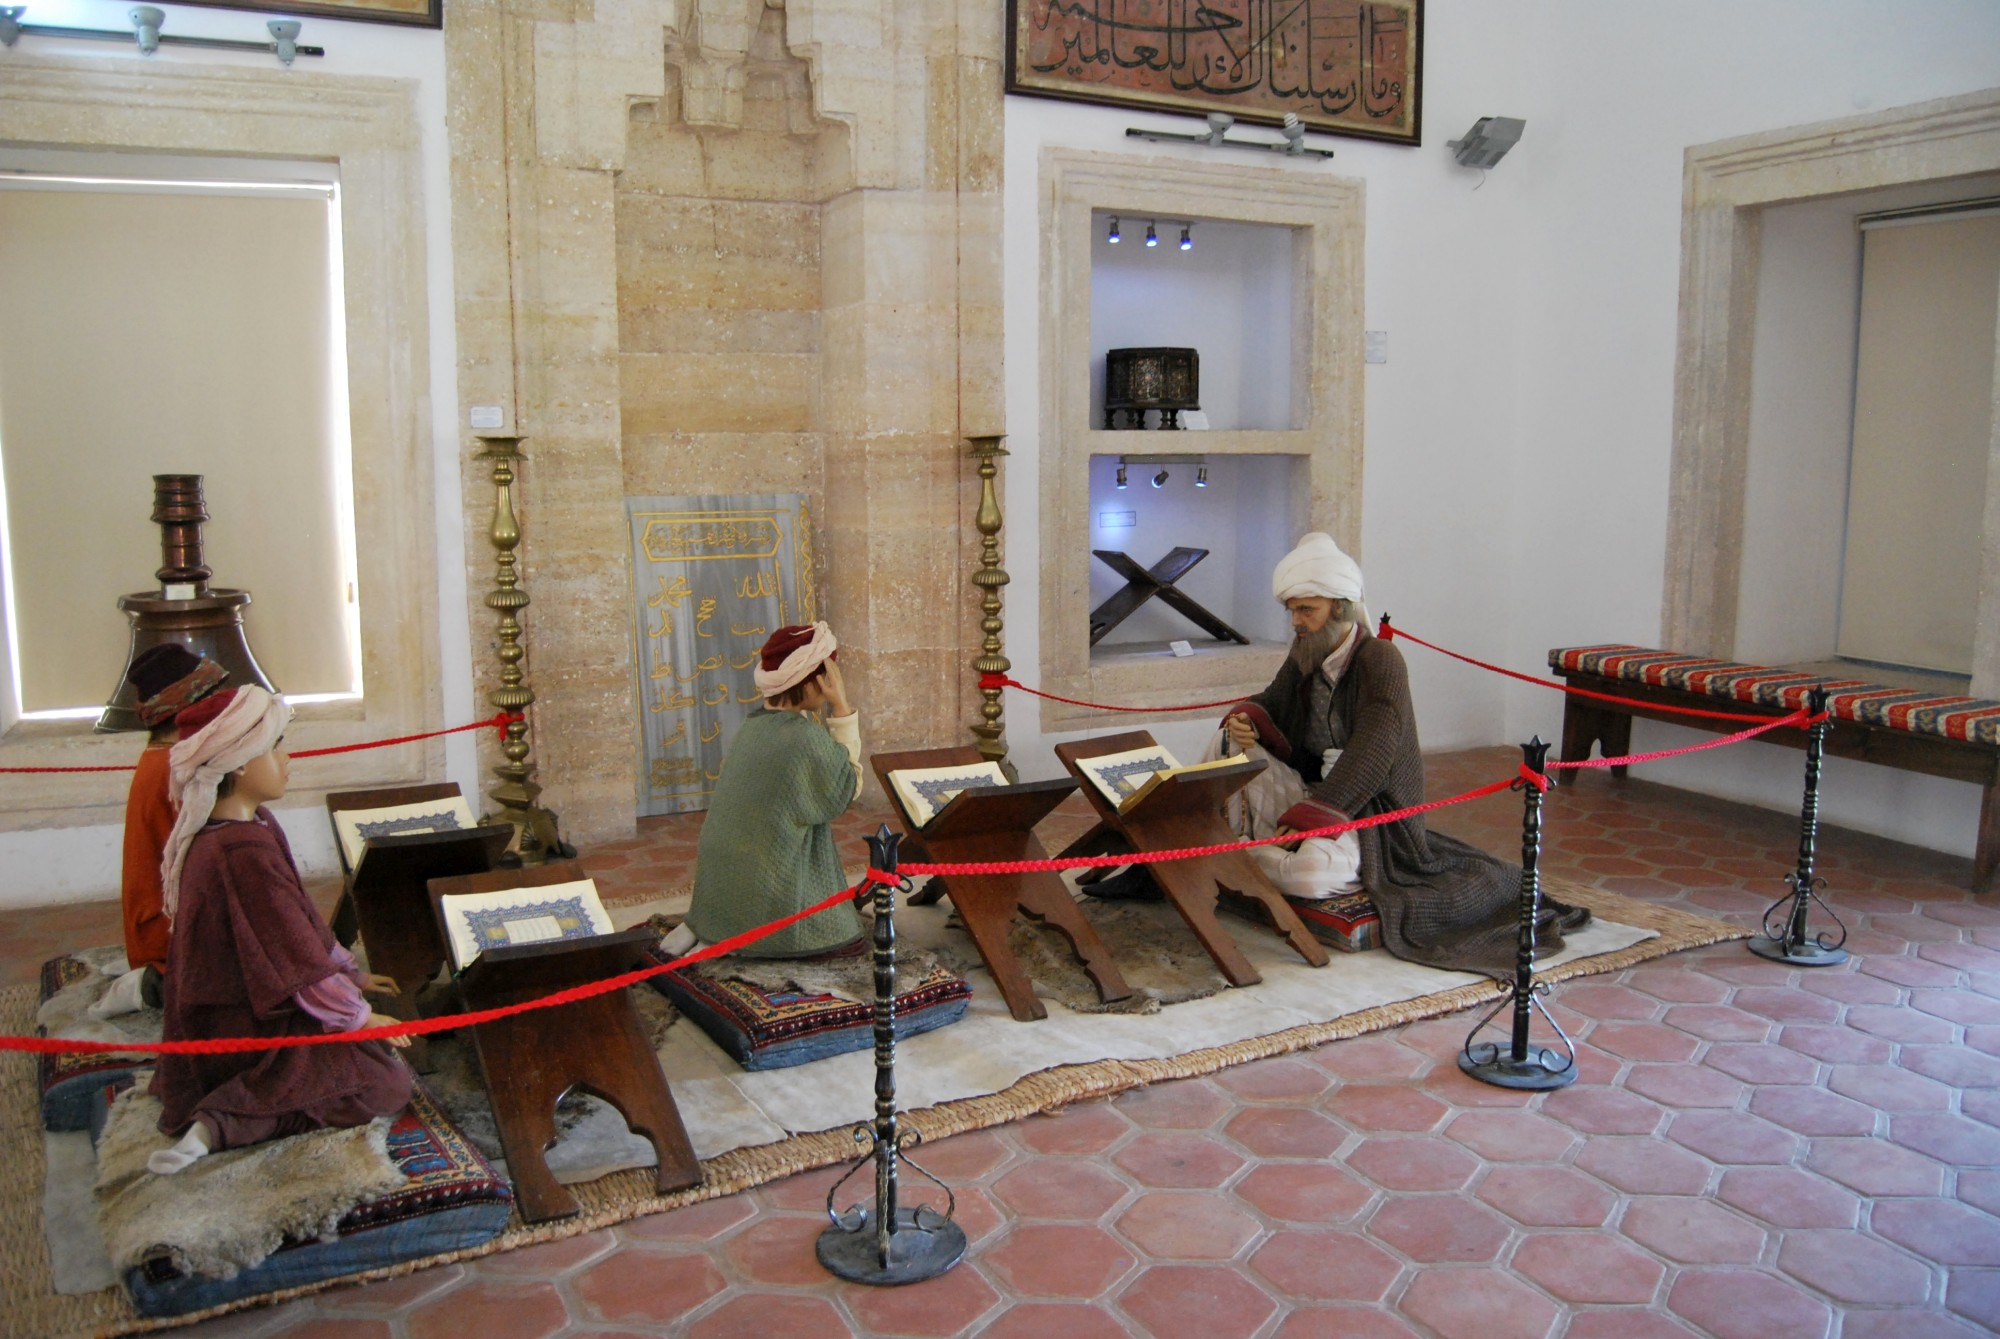 Selimiye Foundation Museum in Edirne